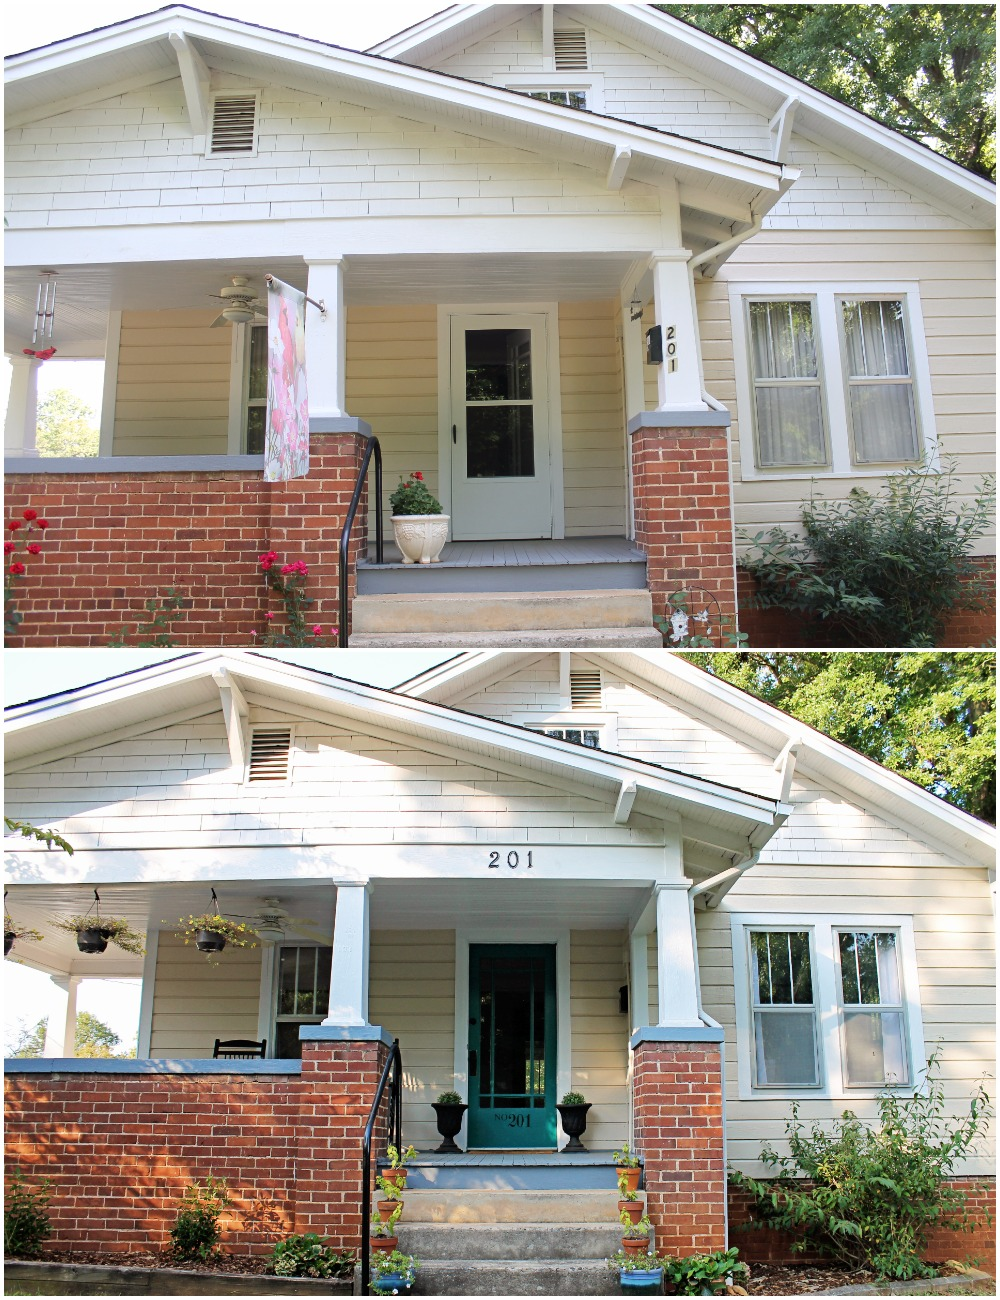 House Flipping Before and Afters - Curb Appeal and Backyard on a Budget DIY (5).jpg